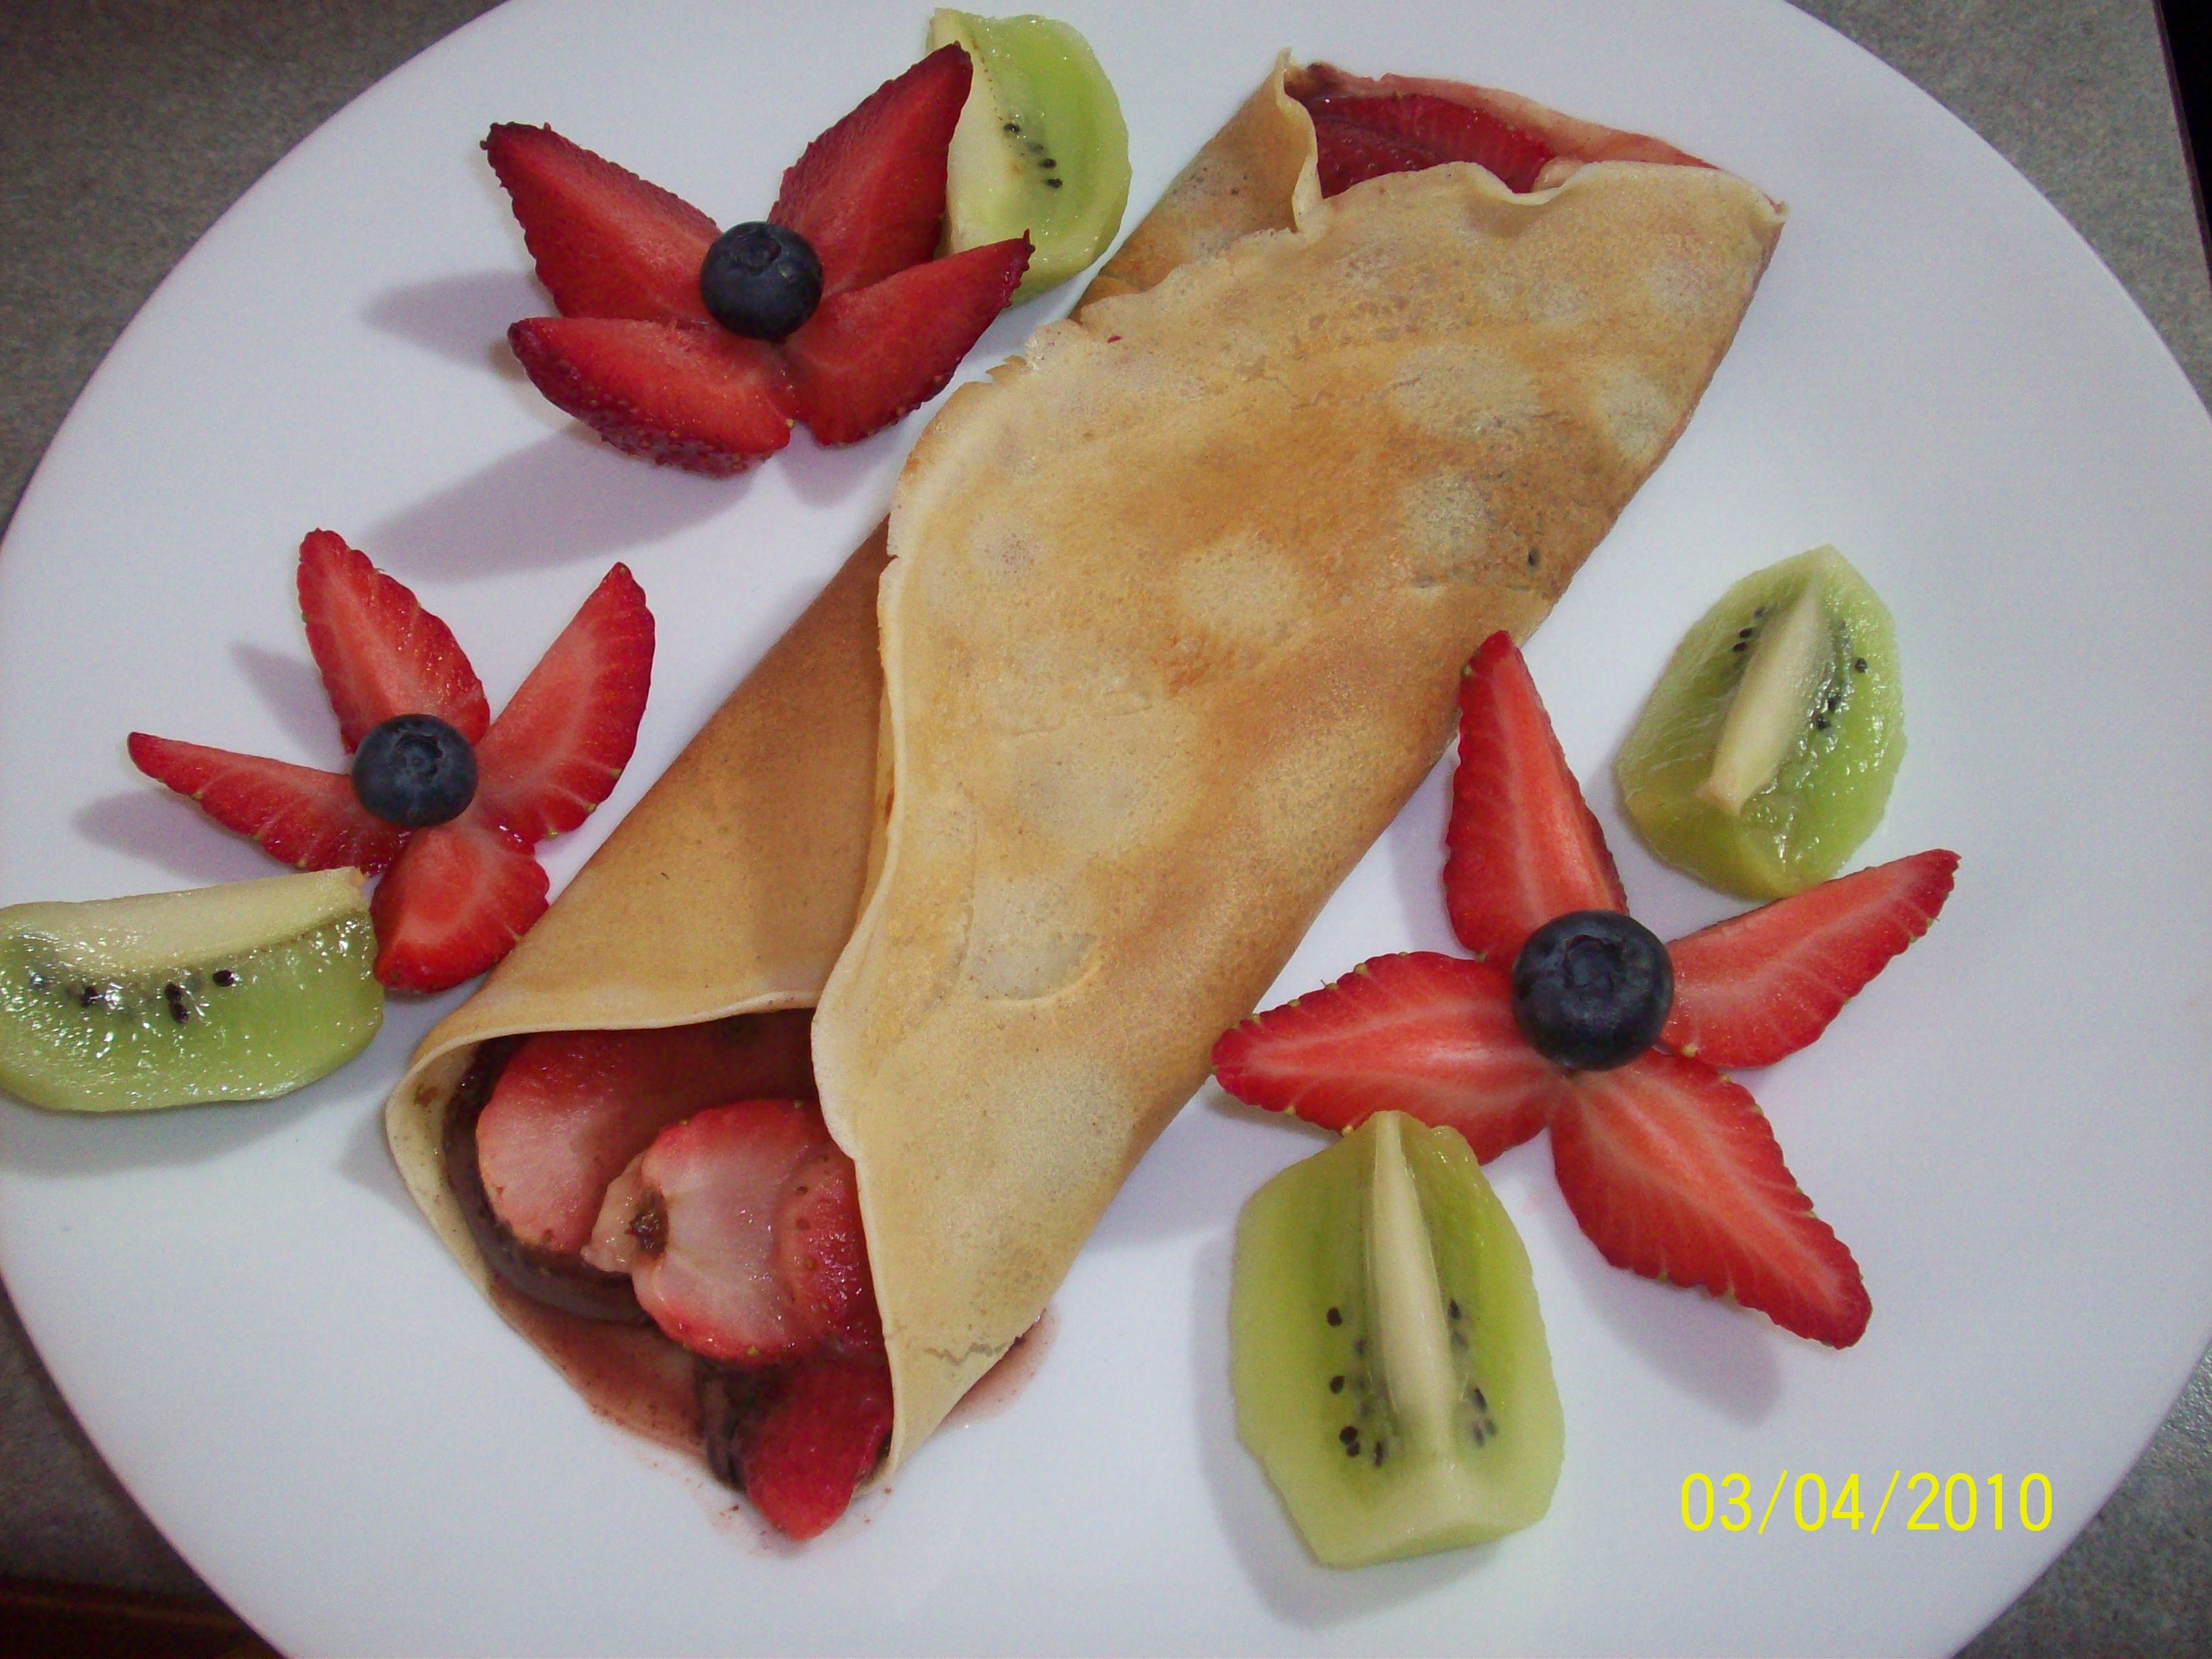 https://foodloader.net/cutie_2010-04-04_Cr__pes_with_strawberries__bananas_and_Nutella2.jpg